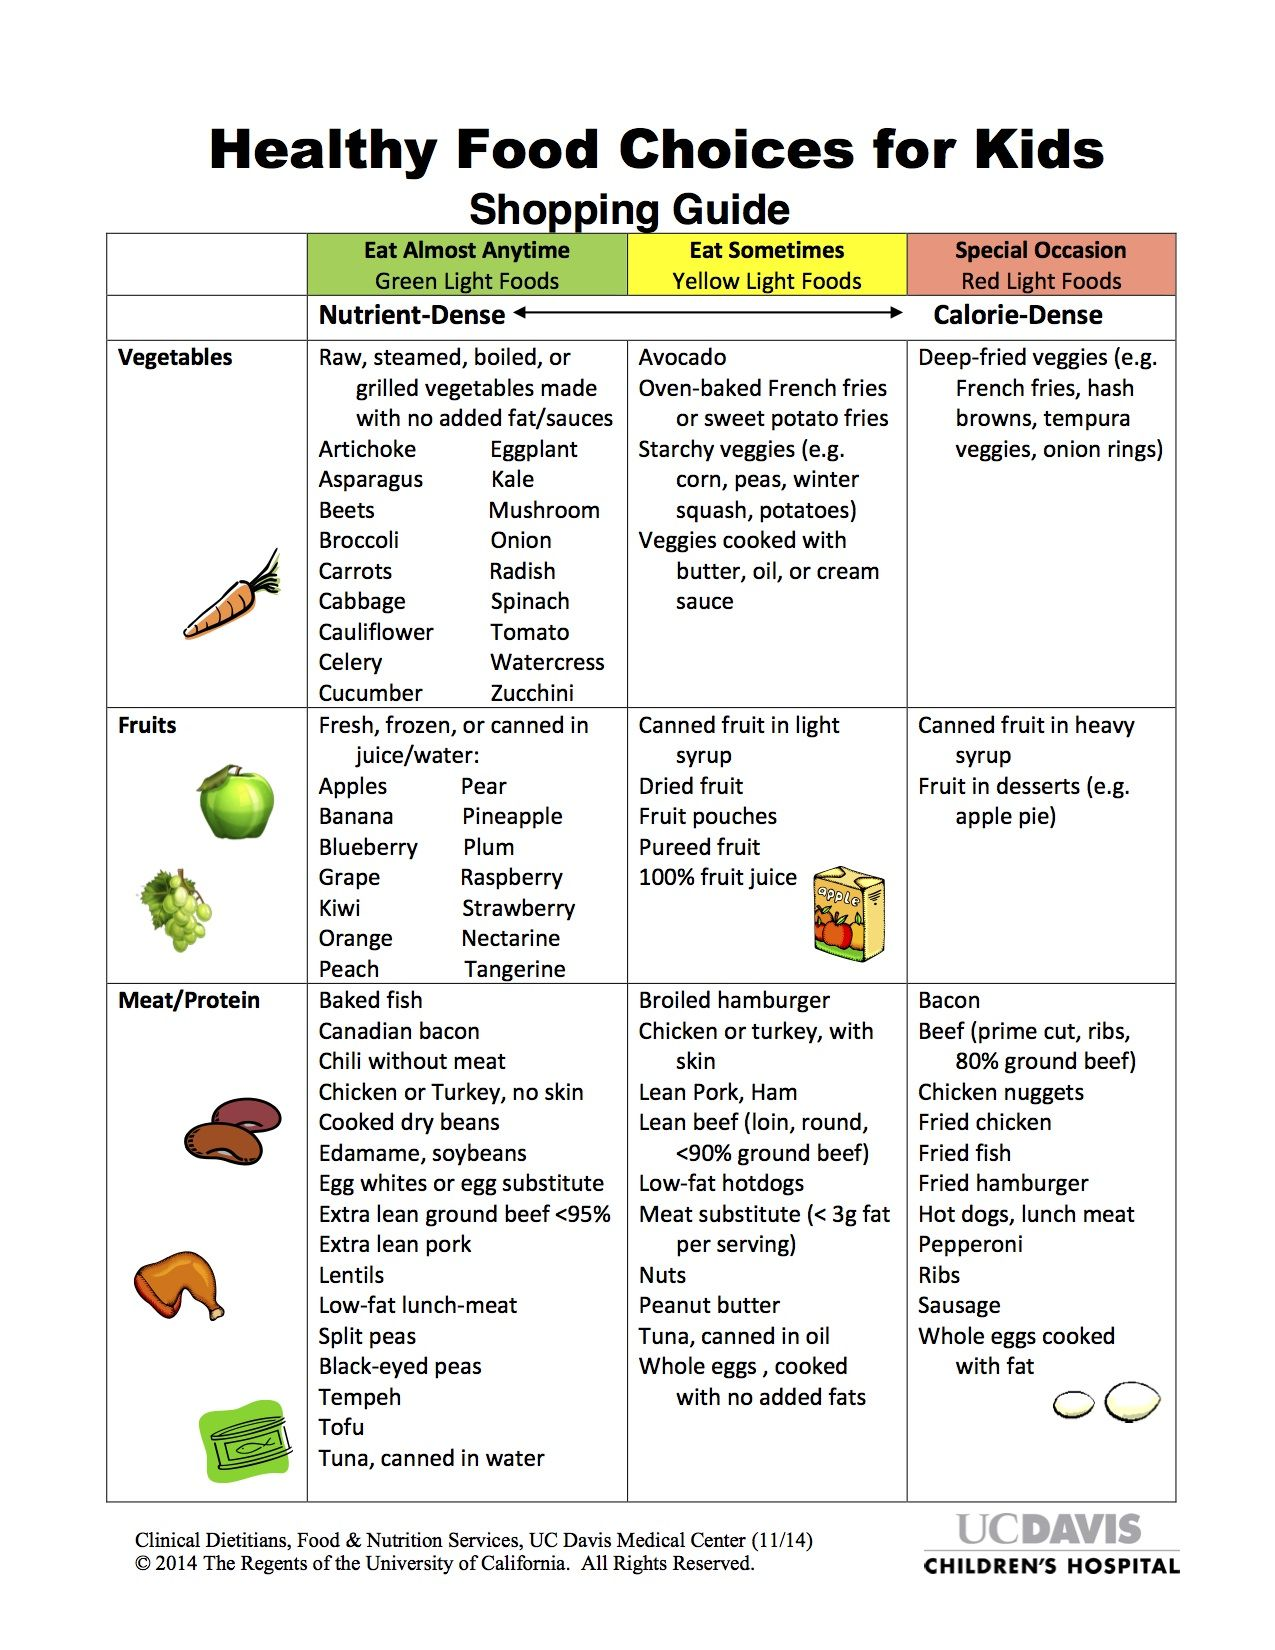 Healthy Food Choices For Kids From Uc Davis Children S